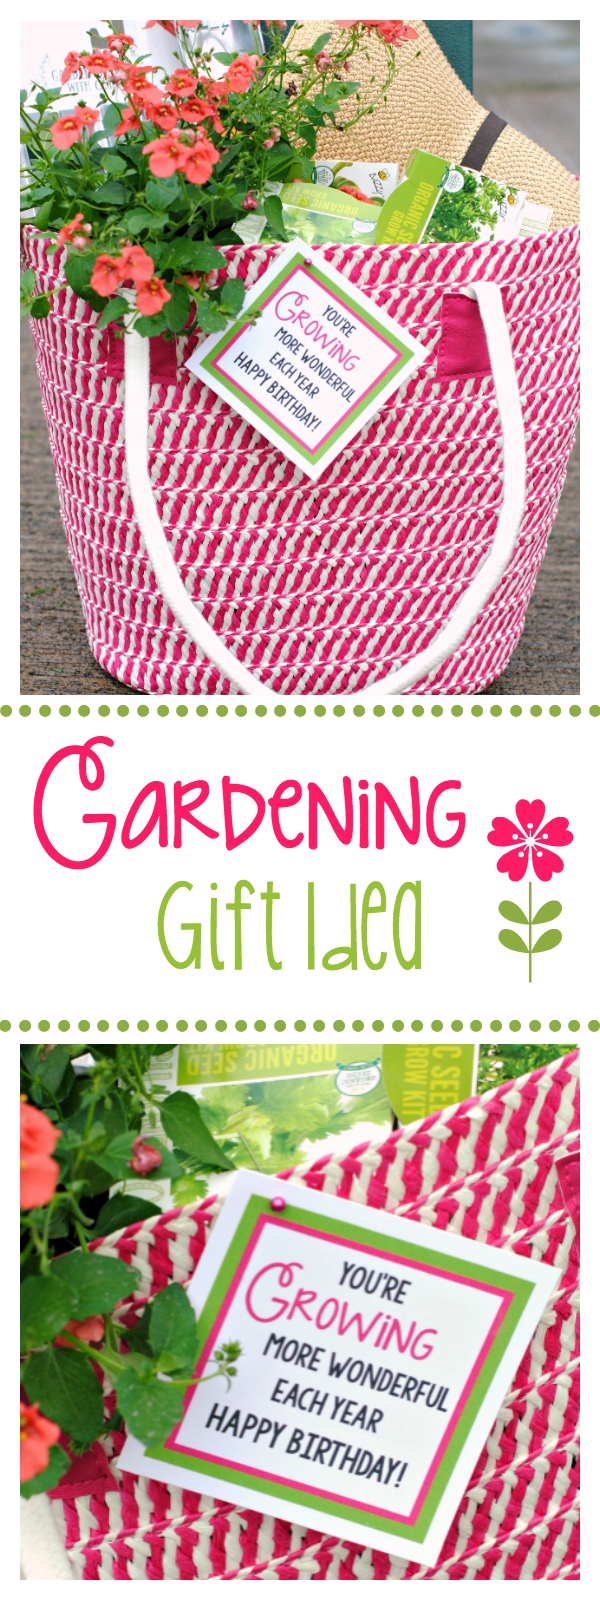 This Gardening Gift Basket Make a Great Birthday Gift for a Garden Lover